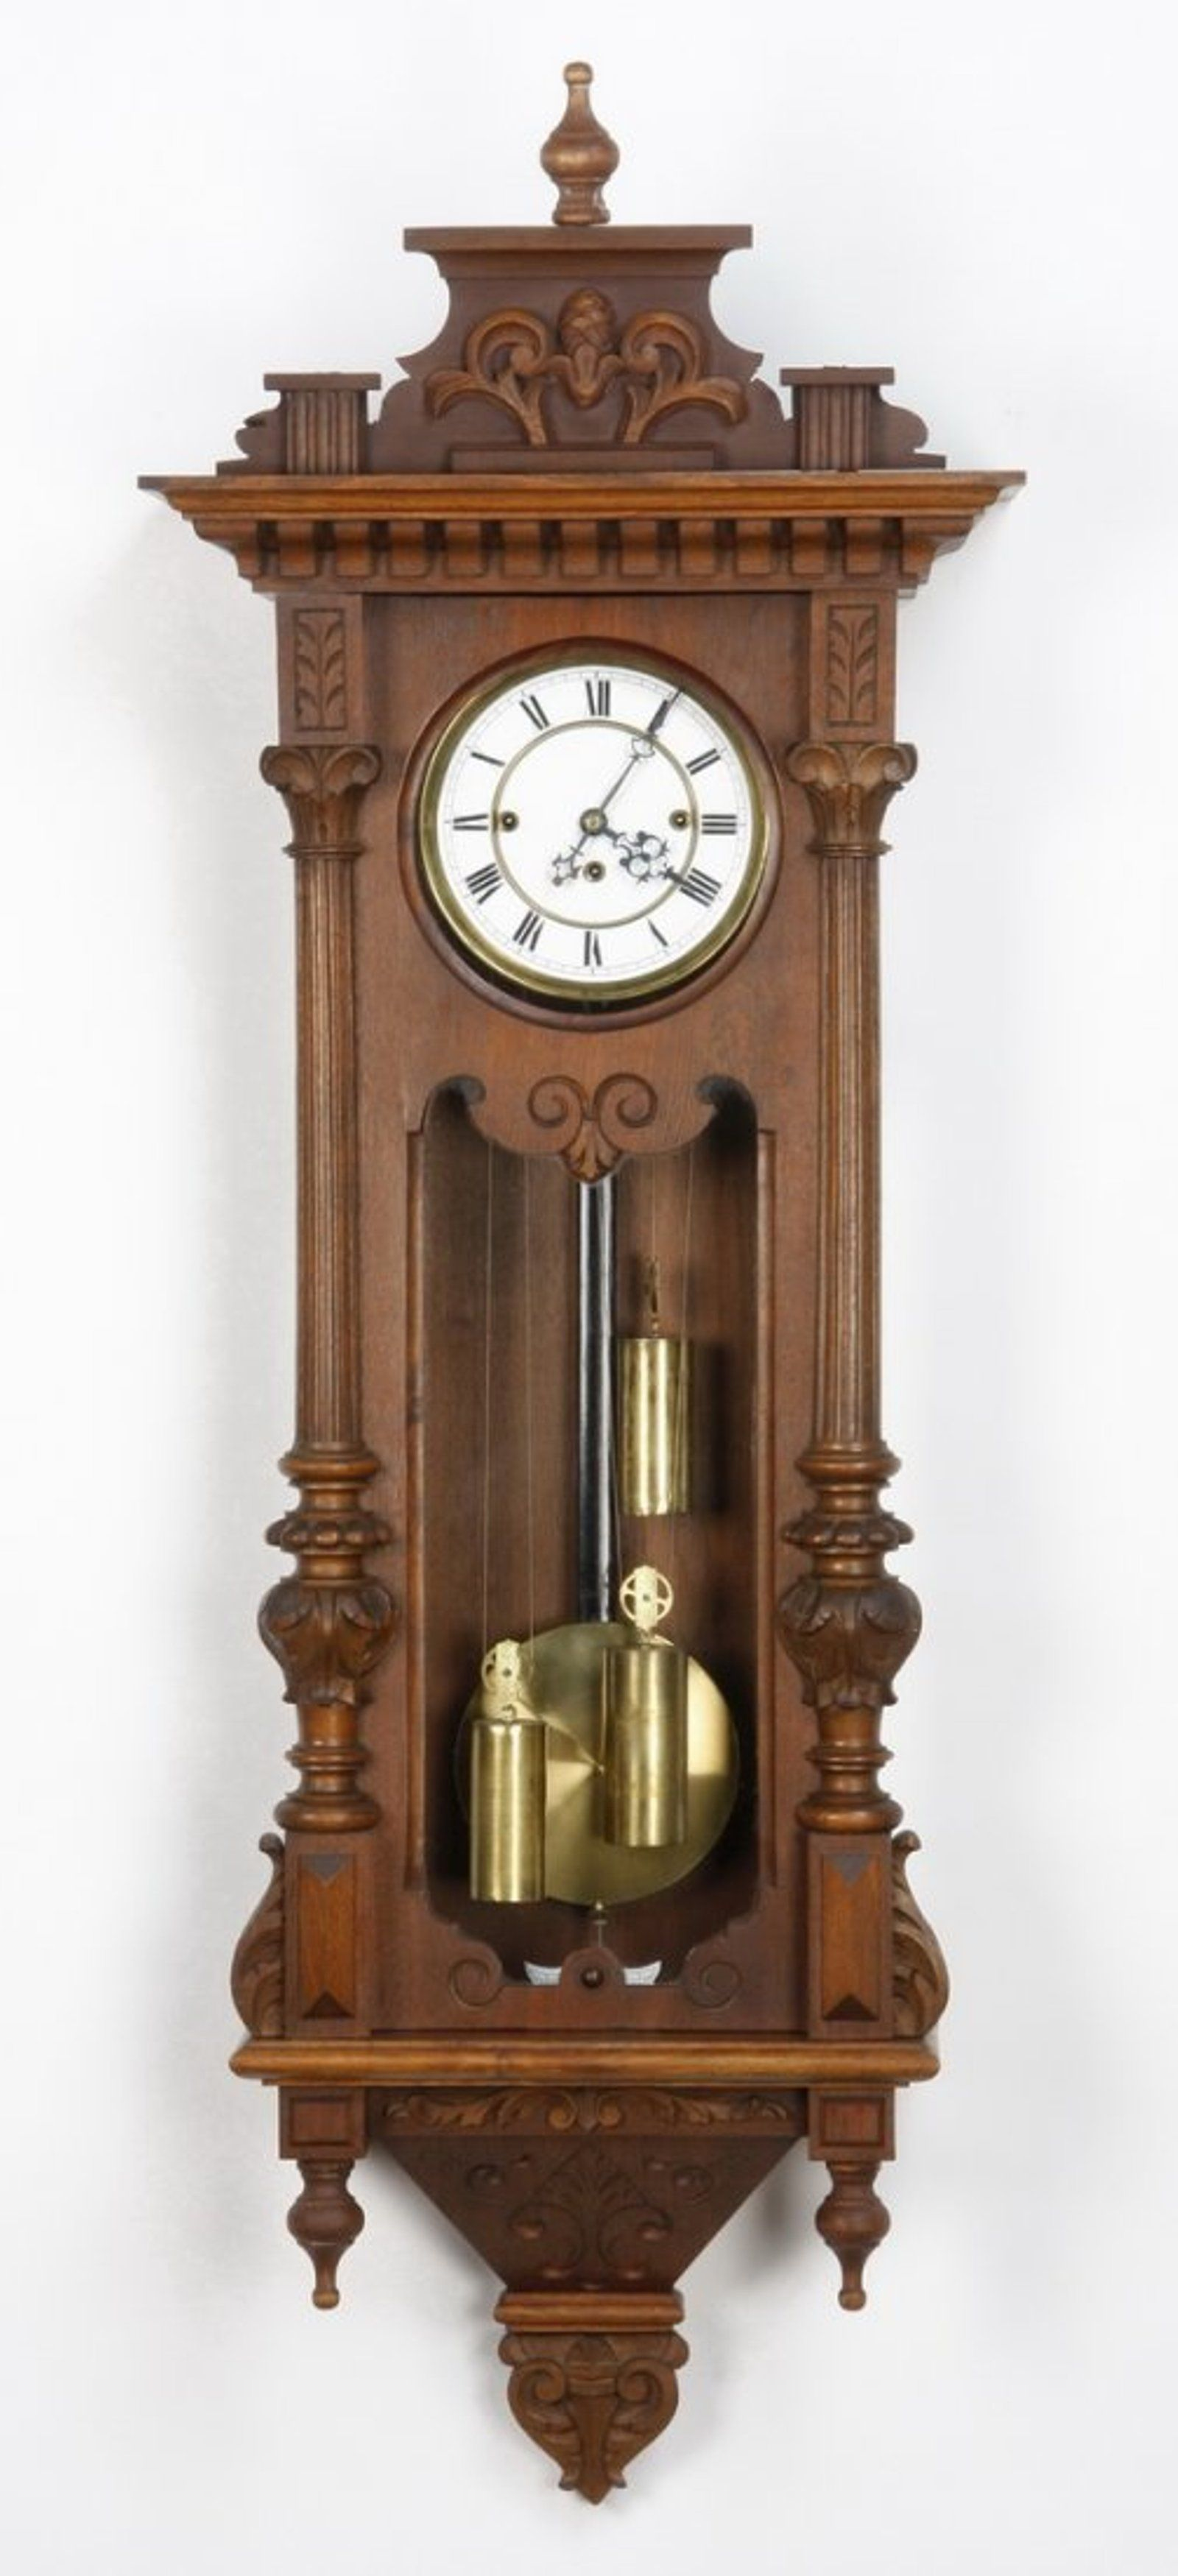 19th C 3 Weight Vienna Regulator Clock Muebles Antiguos  # Muebles Tik Tak